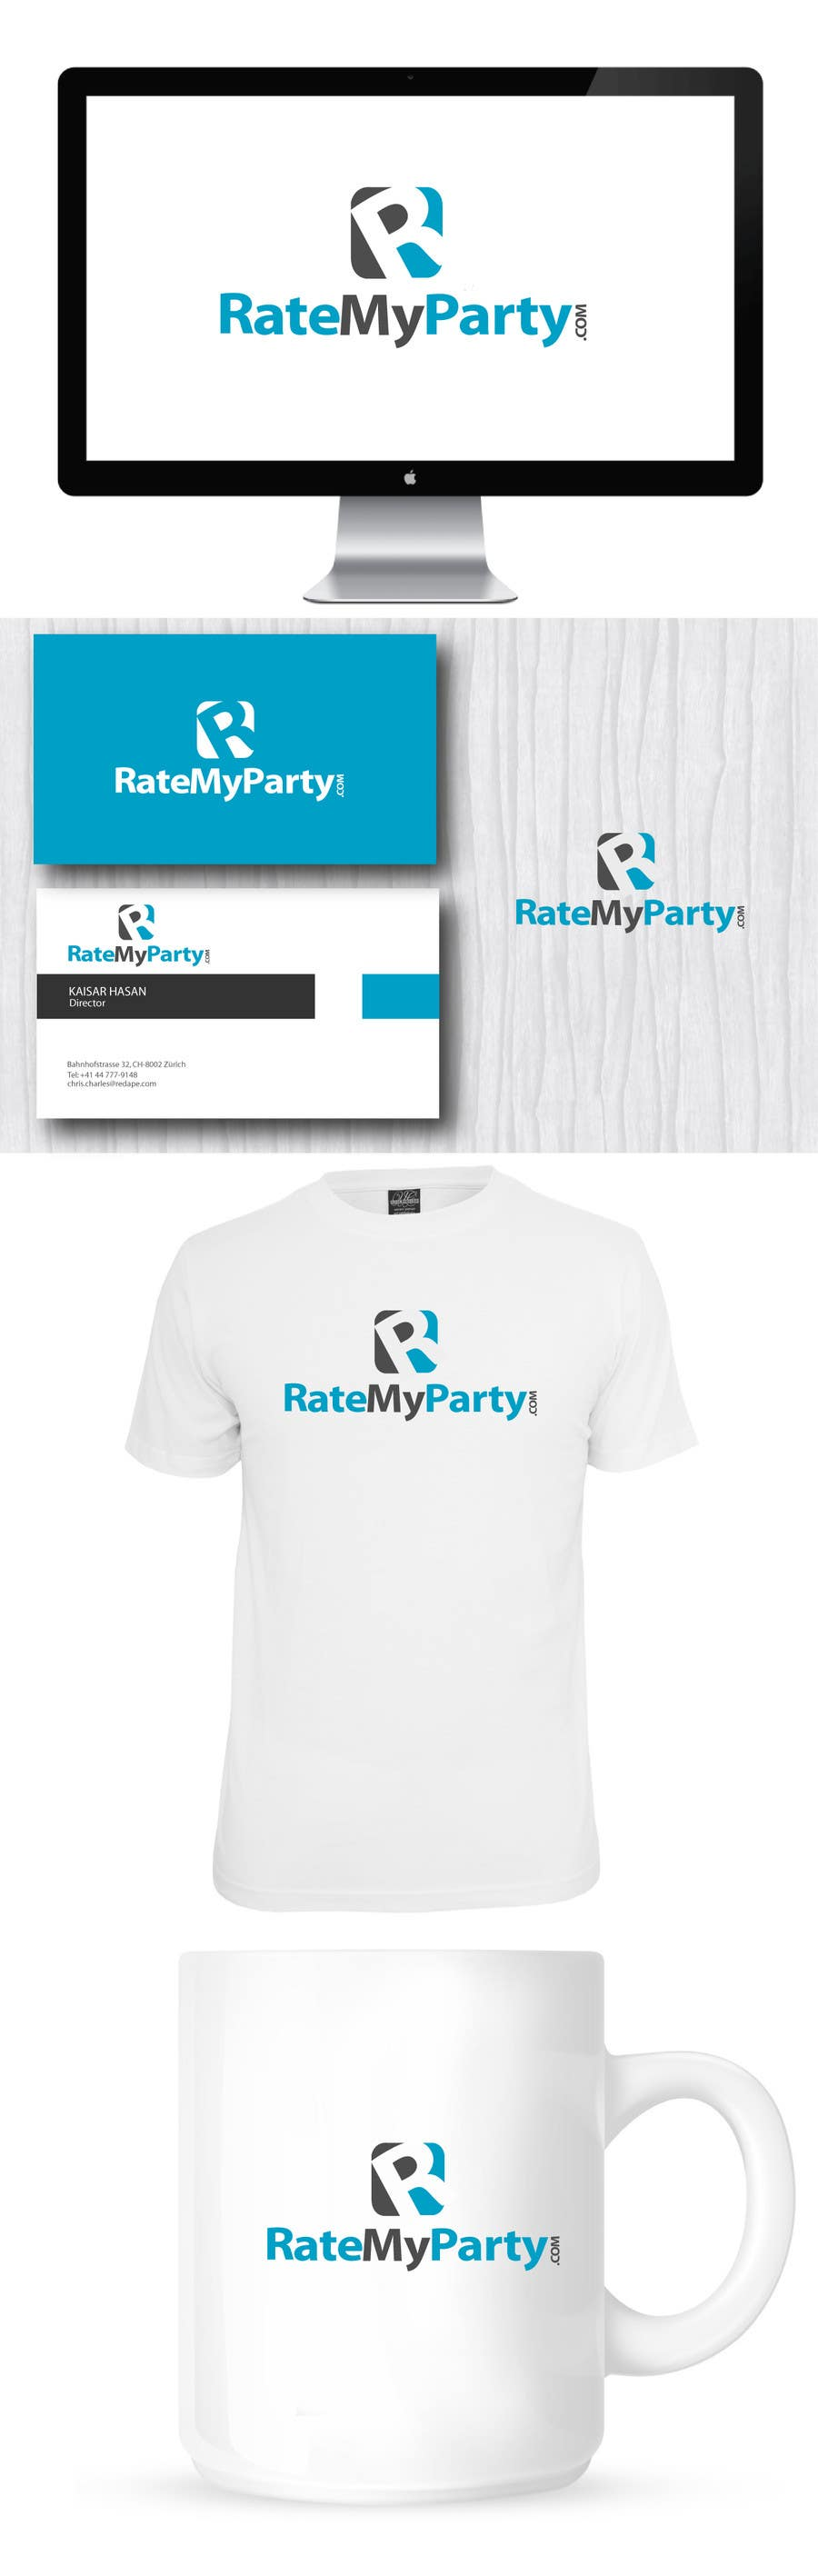 #91 for Design a Logo for ratemyparty.com by brandmaker2007